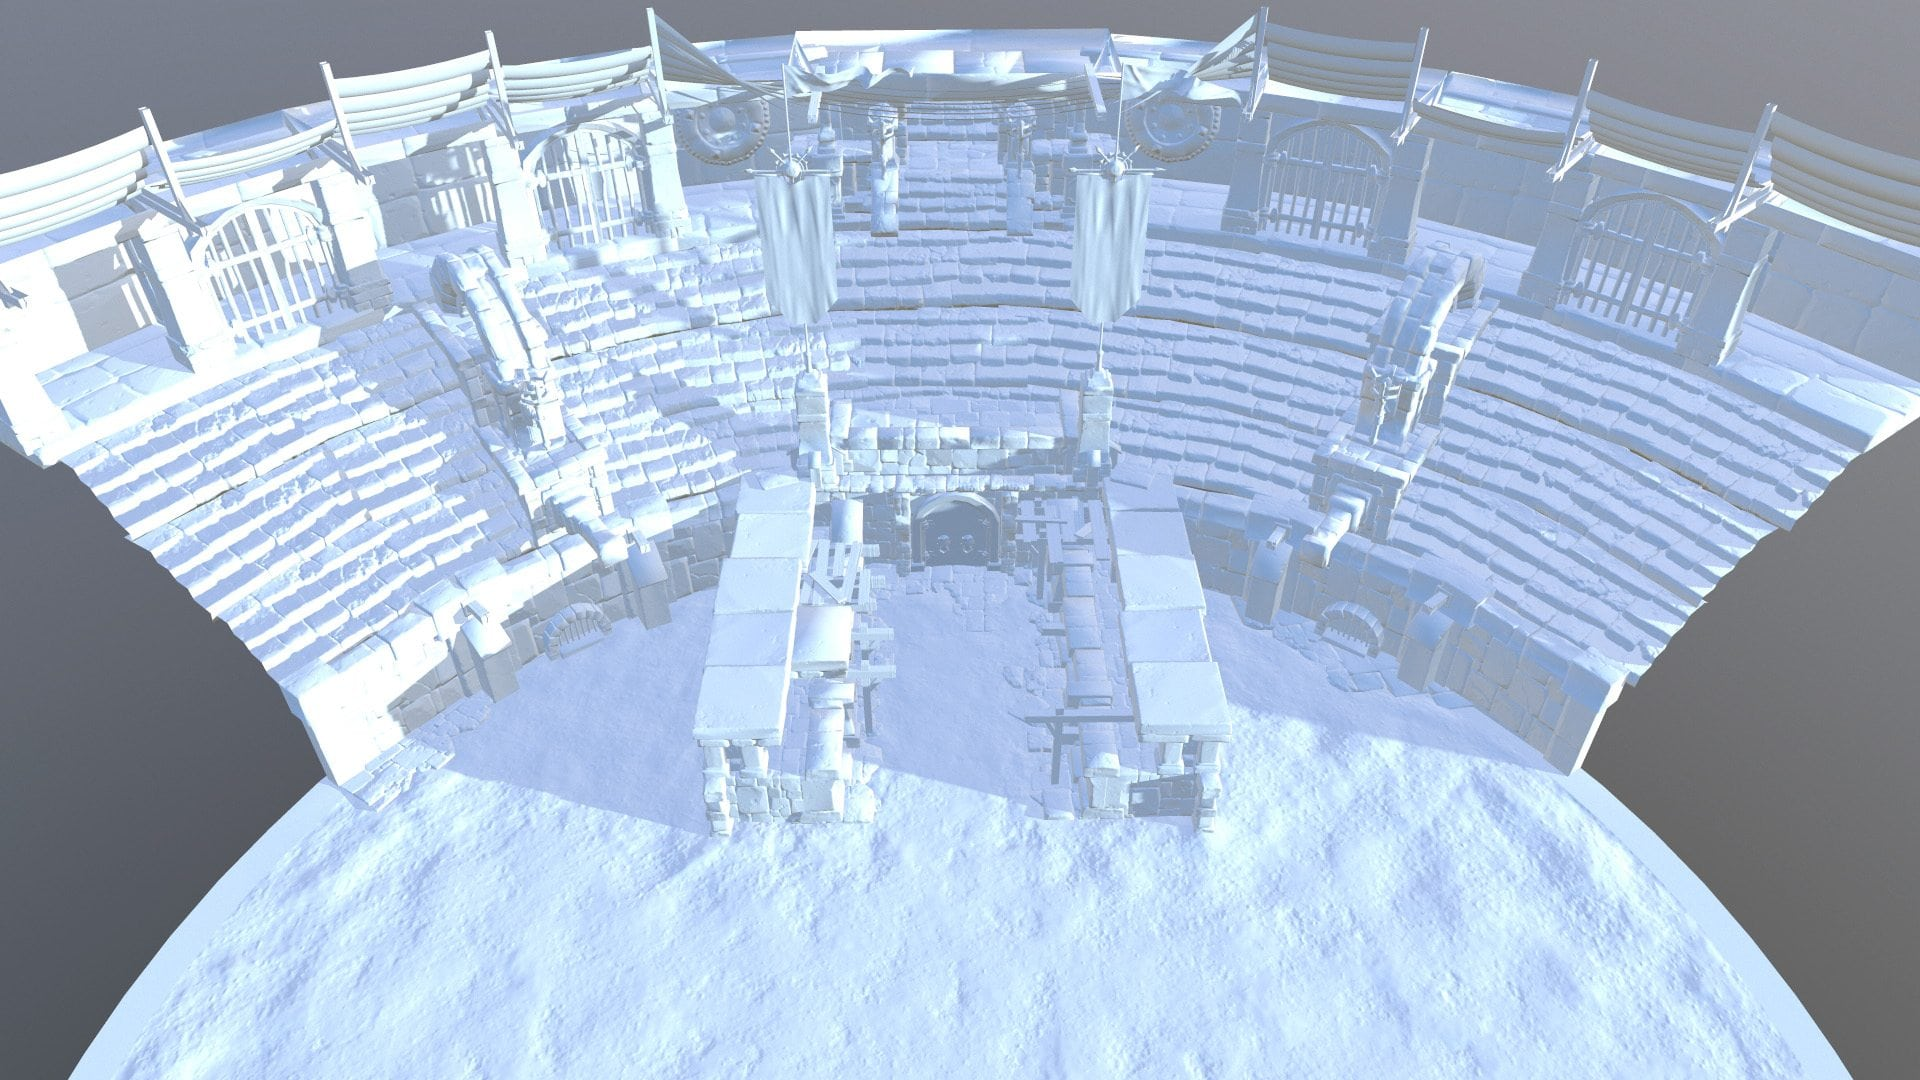 Image 02 - initial size of the arena